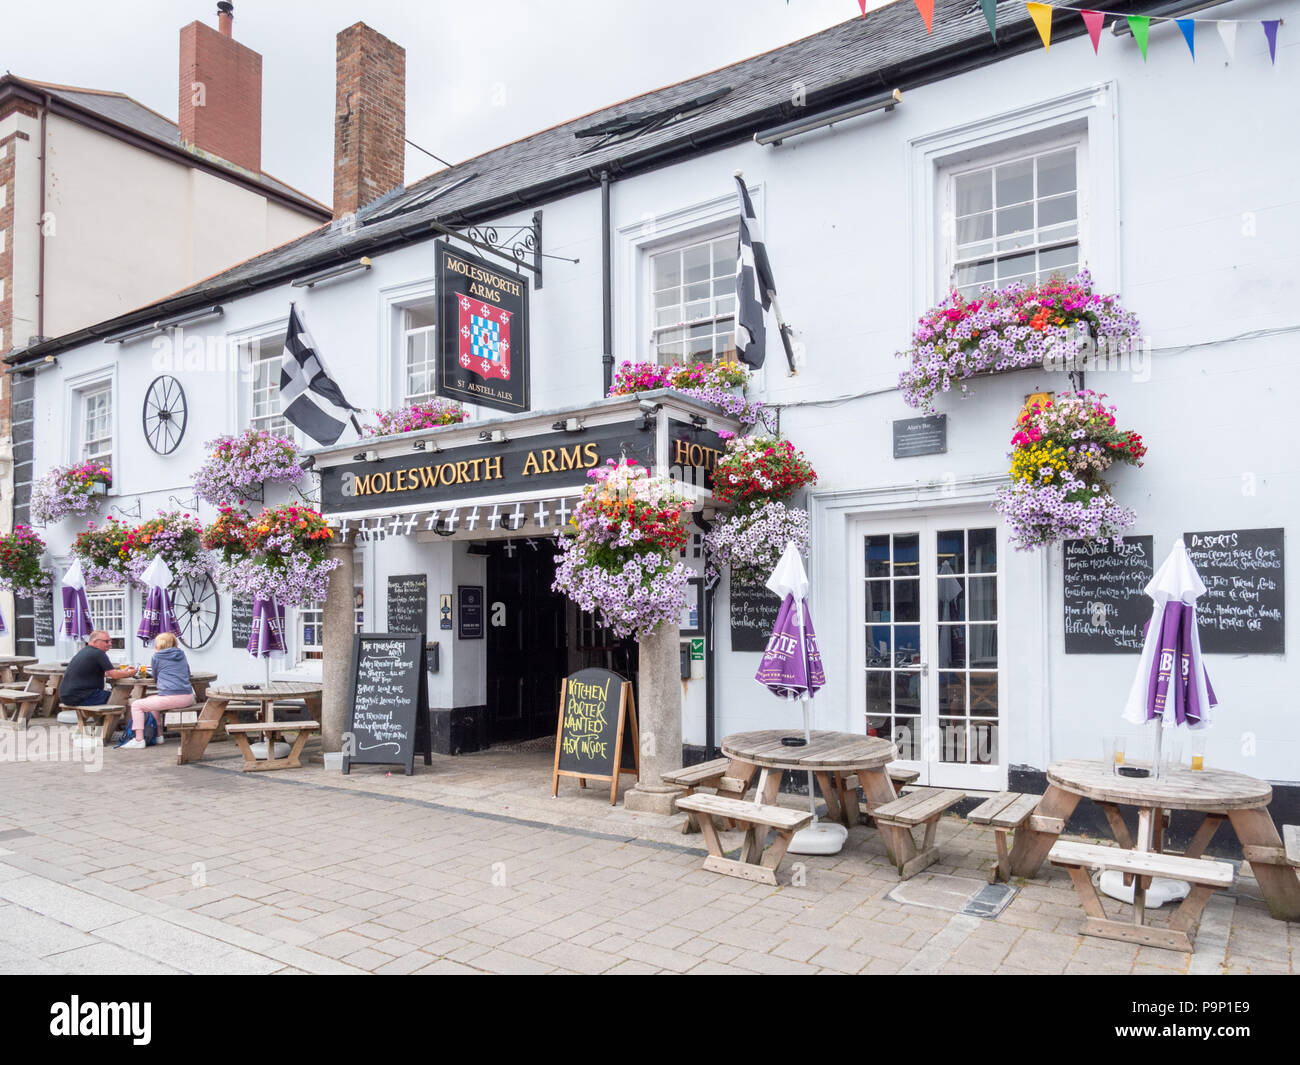 The Molesworth Arms pub and hotel in Wadebridge Cornwall UK with pretty window boxes and hanging baskets full of flowers in summer - Stock Image